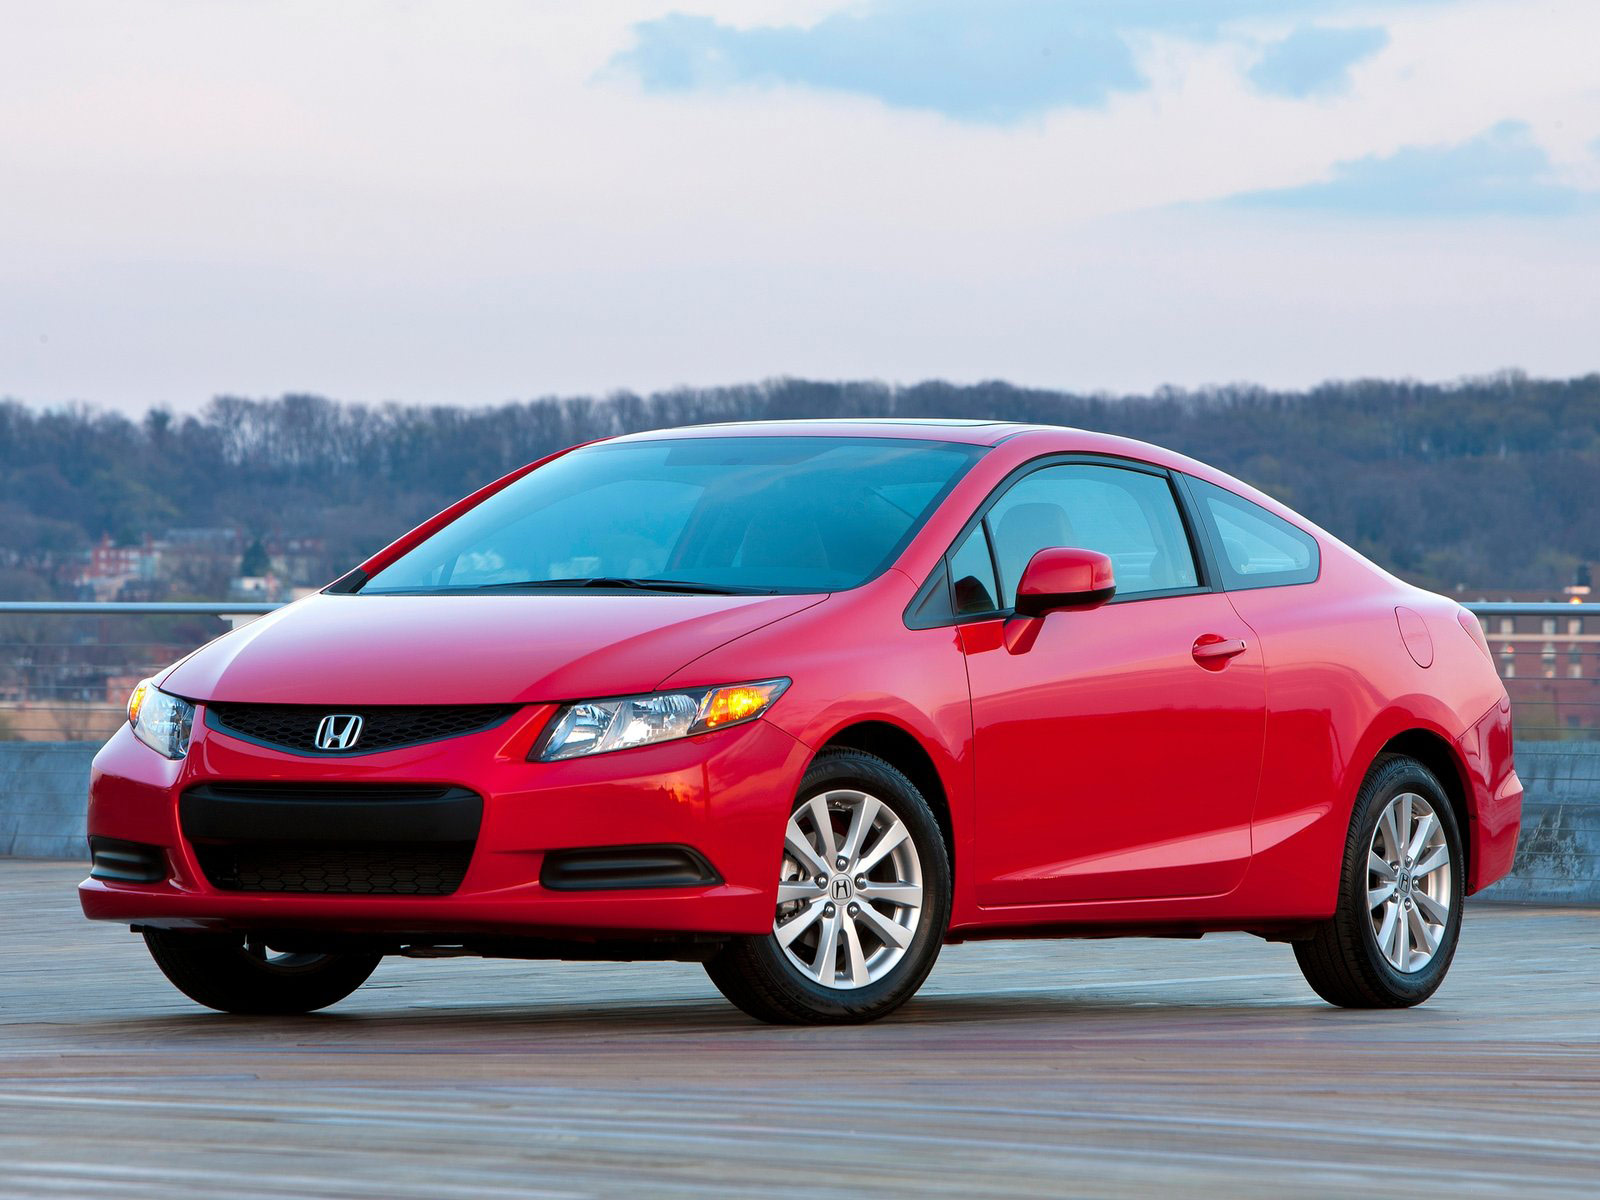 CHEAP CAR INSURANCE: 2012 HONDA Civic Coupe